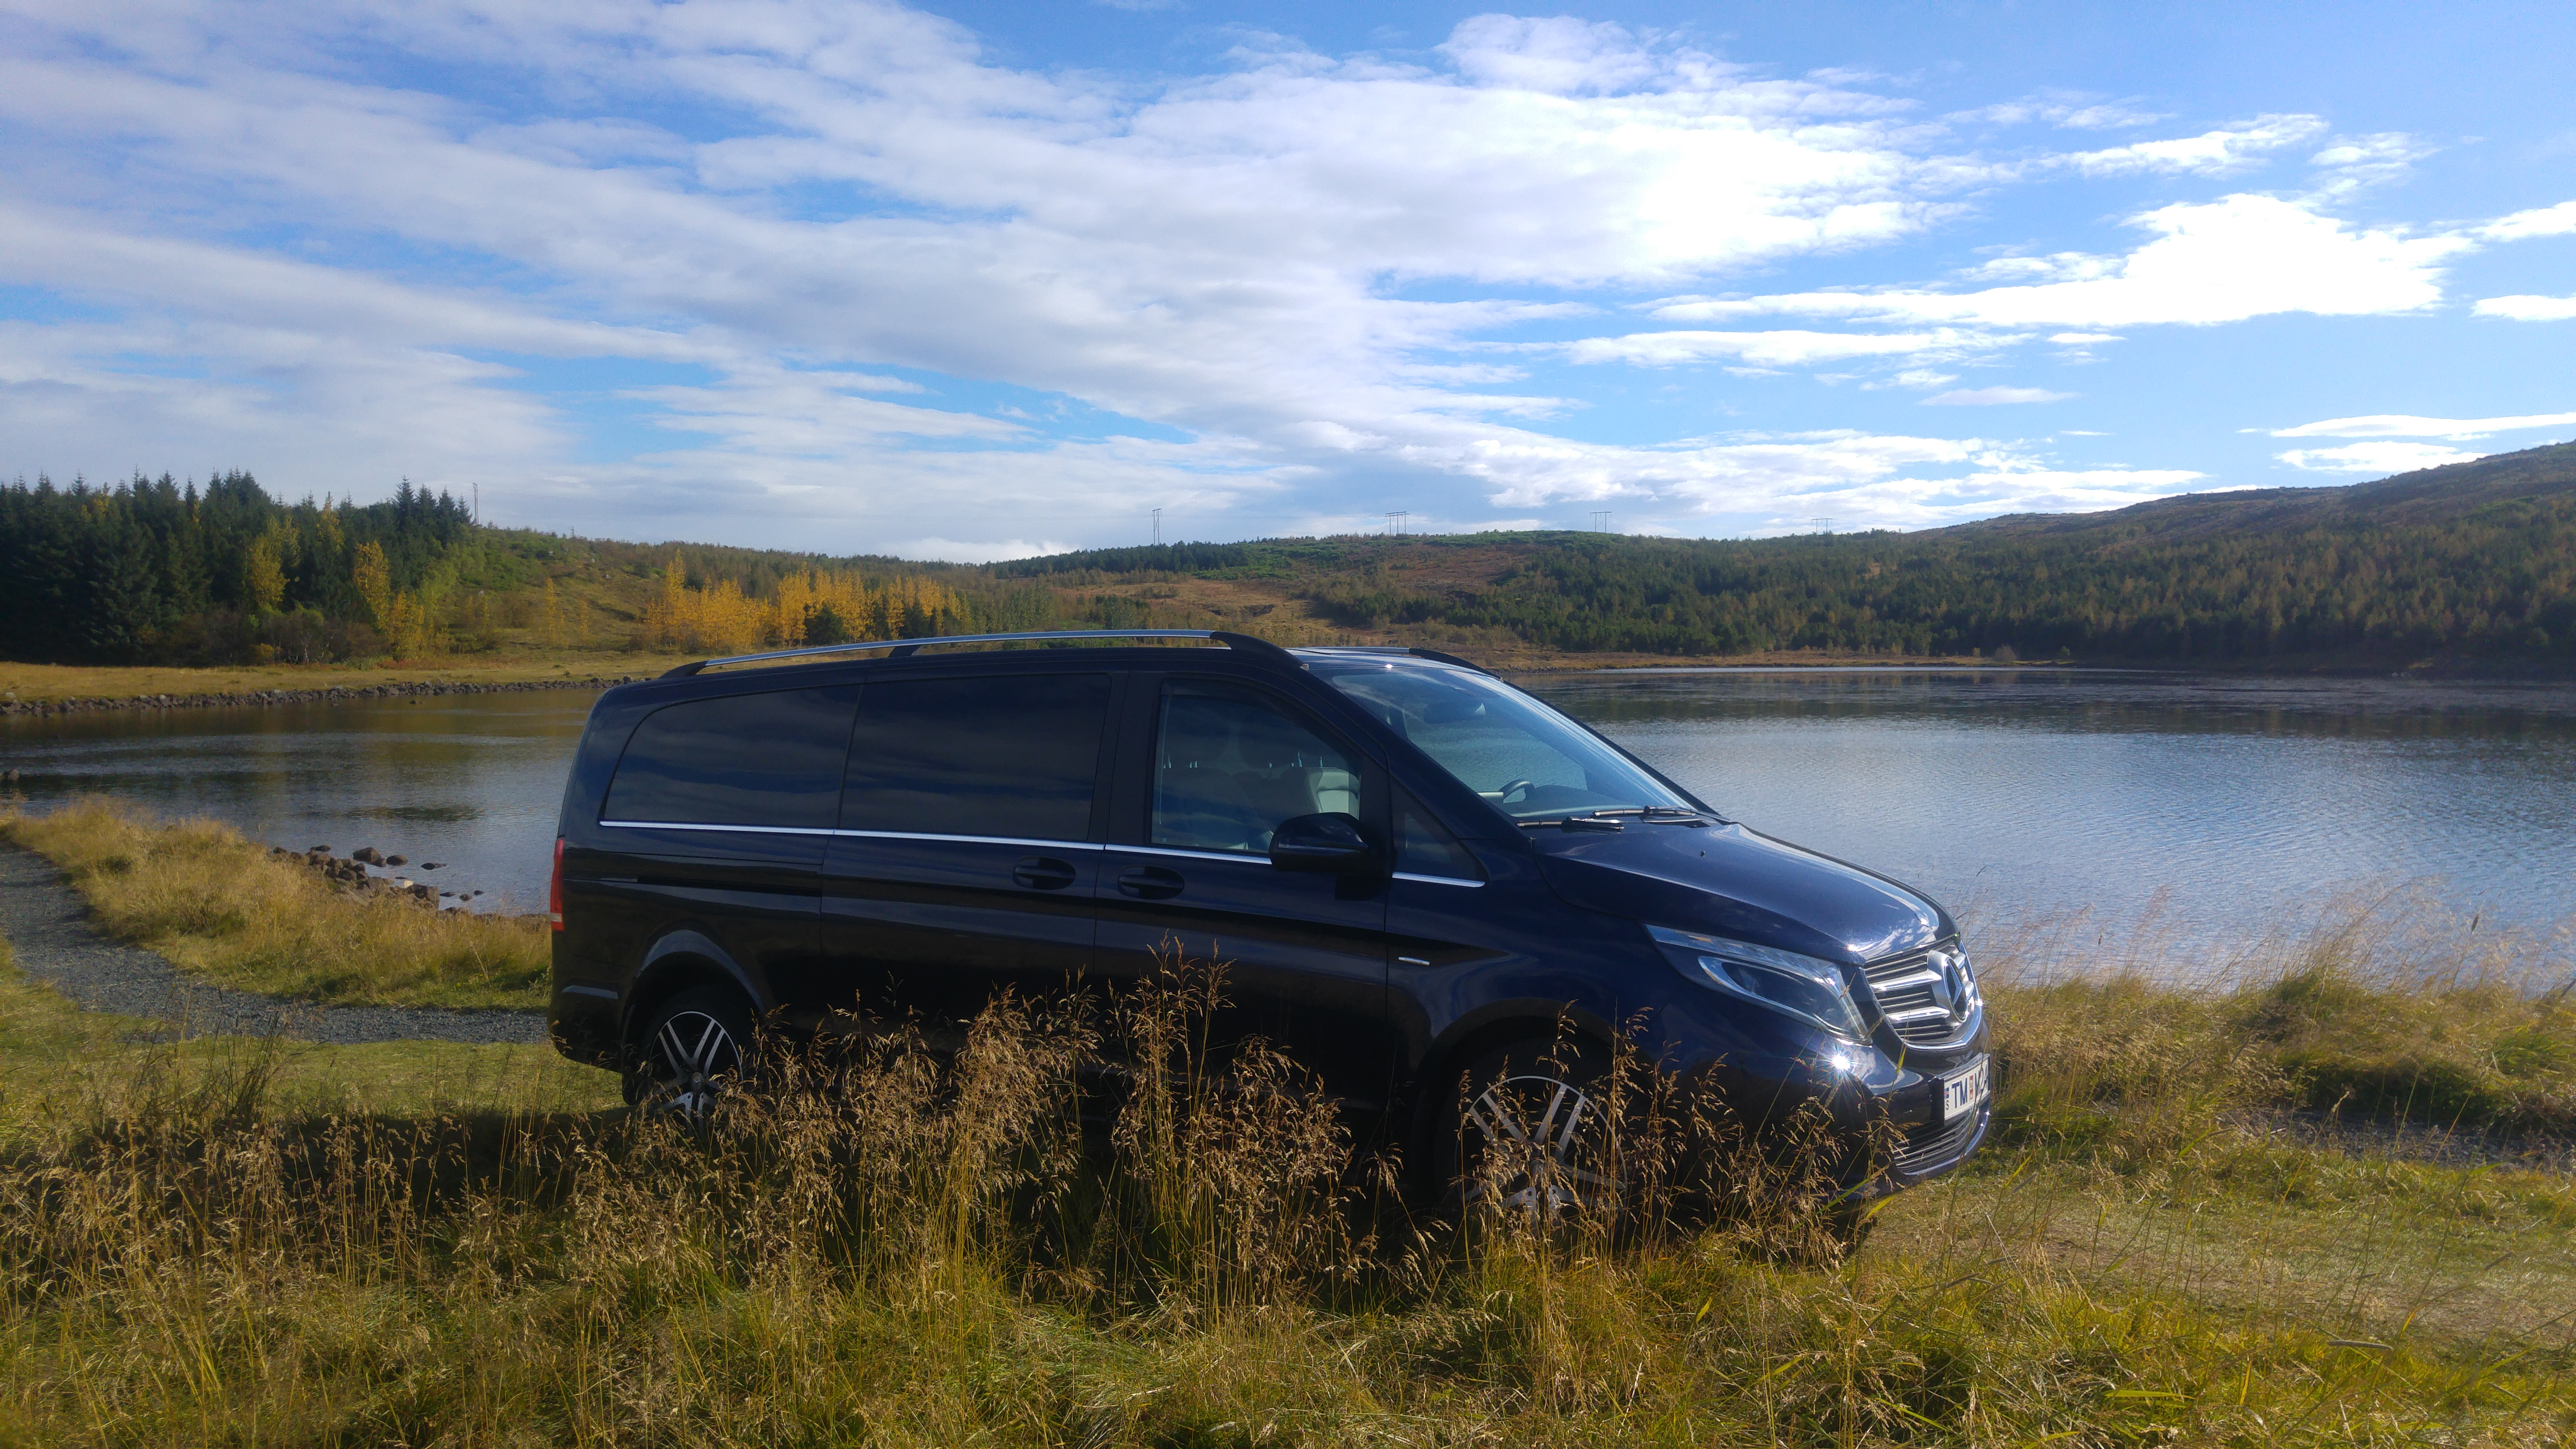 Customizable & Private 8 Hour Iceland Tour in a New Mercedes Benz V-Class Luxury Van